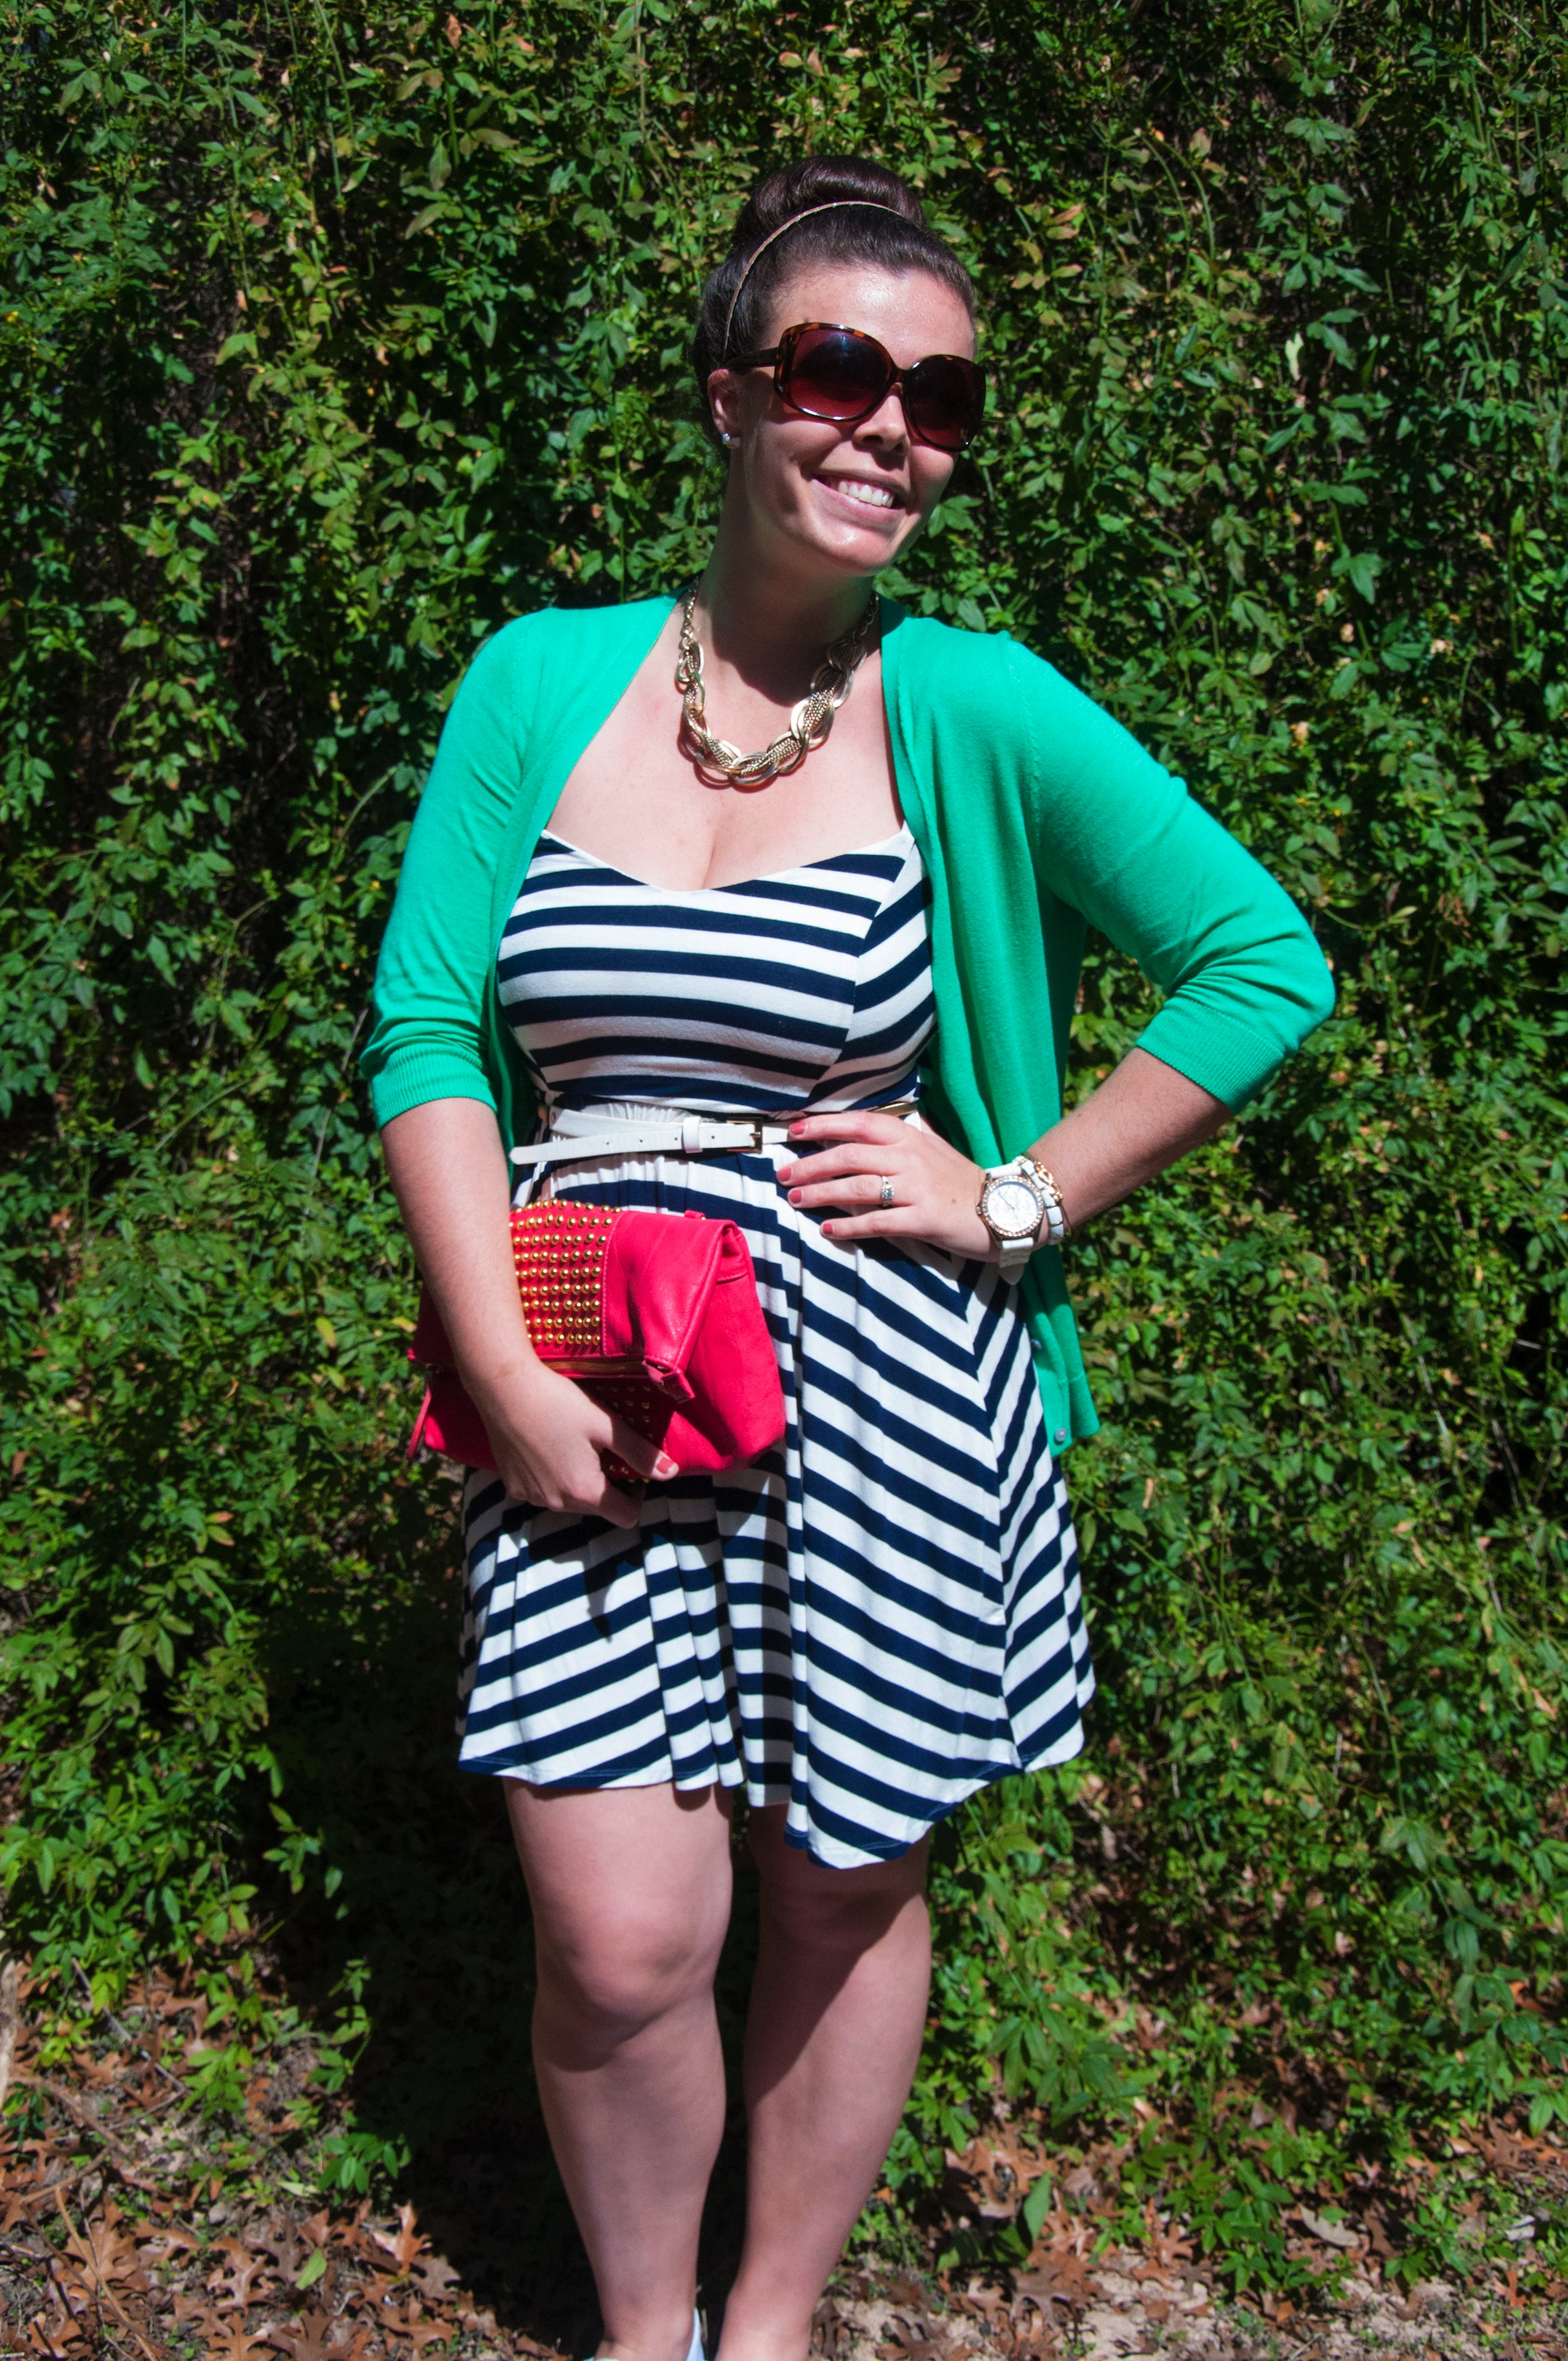 Green and Navy outfit with a pop of pink